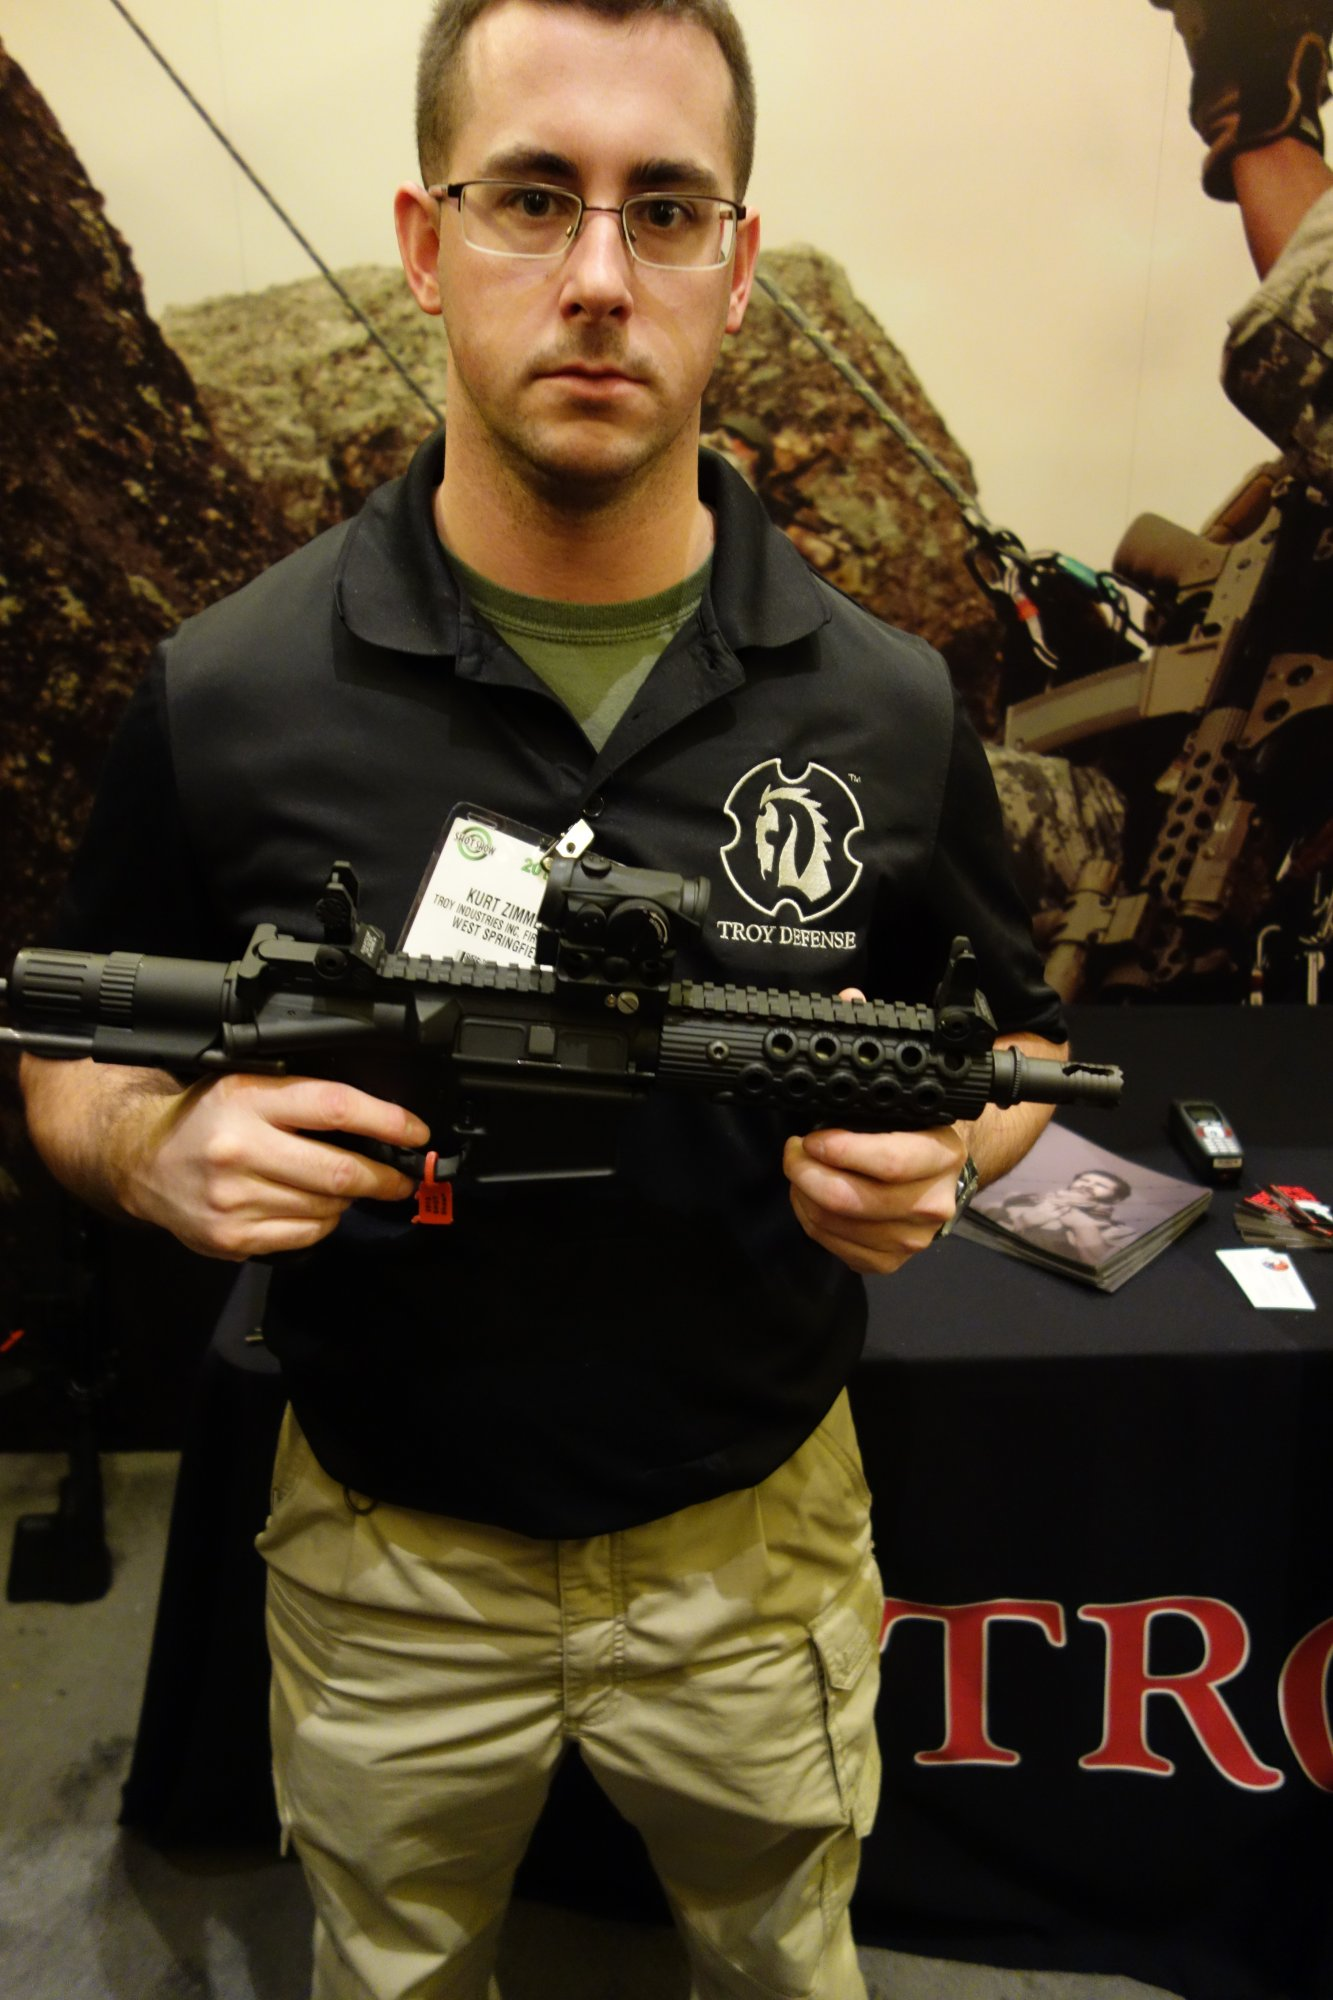 Troy Defense M7 PDW Select Fire 5.56mm 300 AAC Blackout 300BLK Tactical AR 15 SBR 14.5 Trunk Monkey Tactical AR 15 Carbine and Semi Auto Only Tactical AR 15 Carbines SHOT Show 2013 David Crane DefenseReview.com DR 4 Troy Defense M7 PDW 7 AR SBR and 14.5 Trunk Monkey 14.5 AR Carbine: 5.56mm/300 AAC Blackout (300BLK) Select Fire Tactical AR 15 SBR/Carbine Package (Video!)